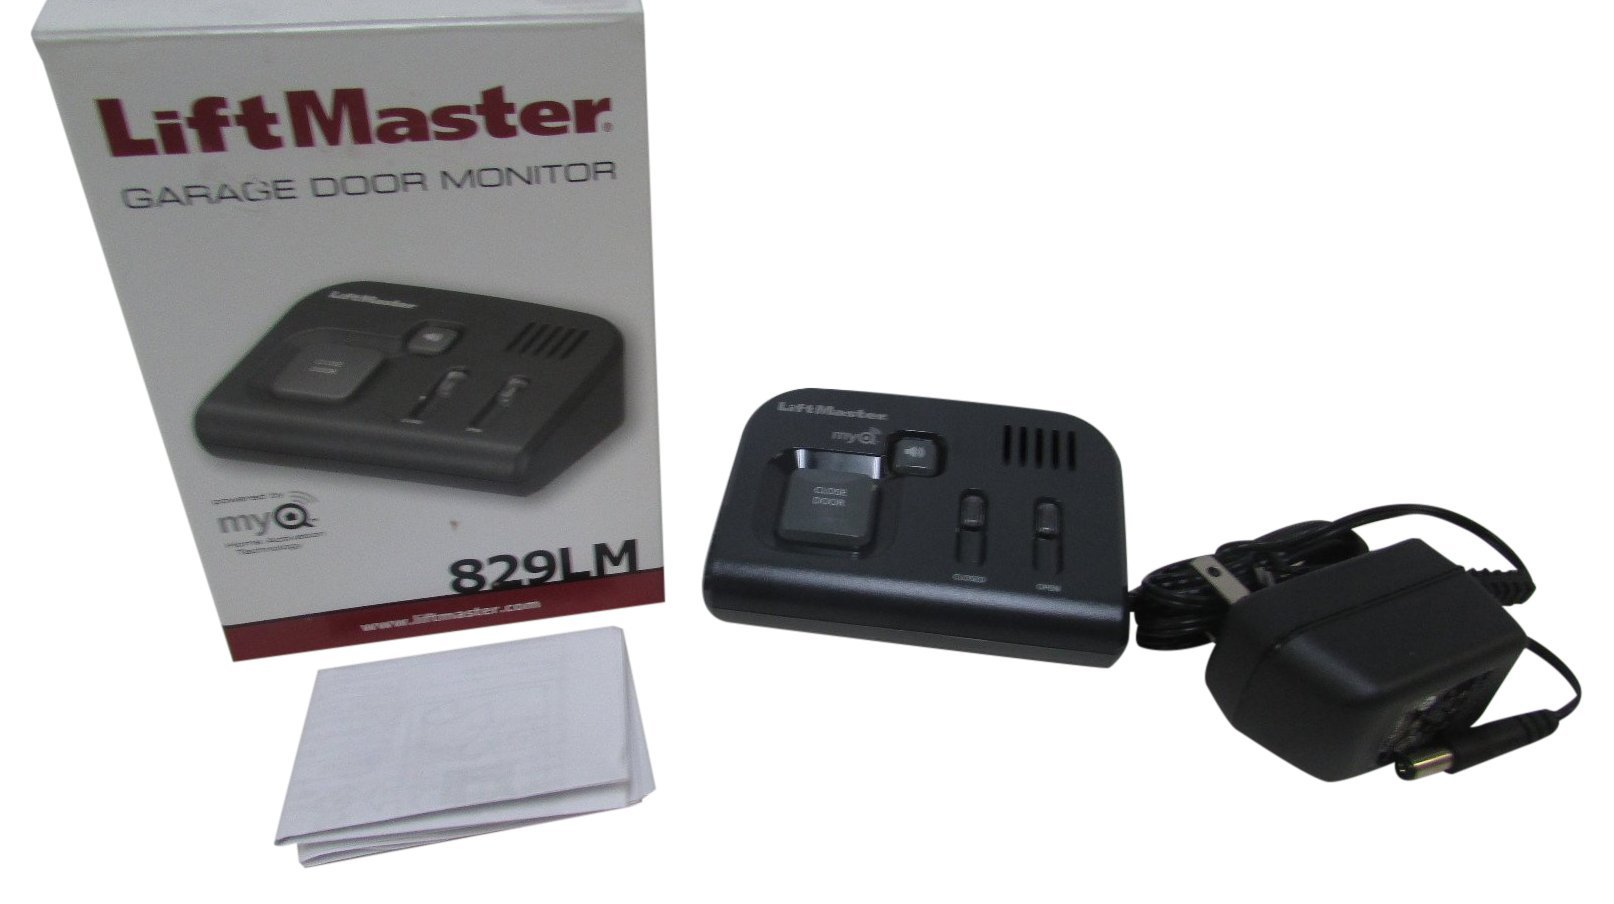 LiftMaster 829LM Garage Door Monitor Product Image